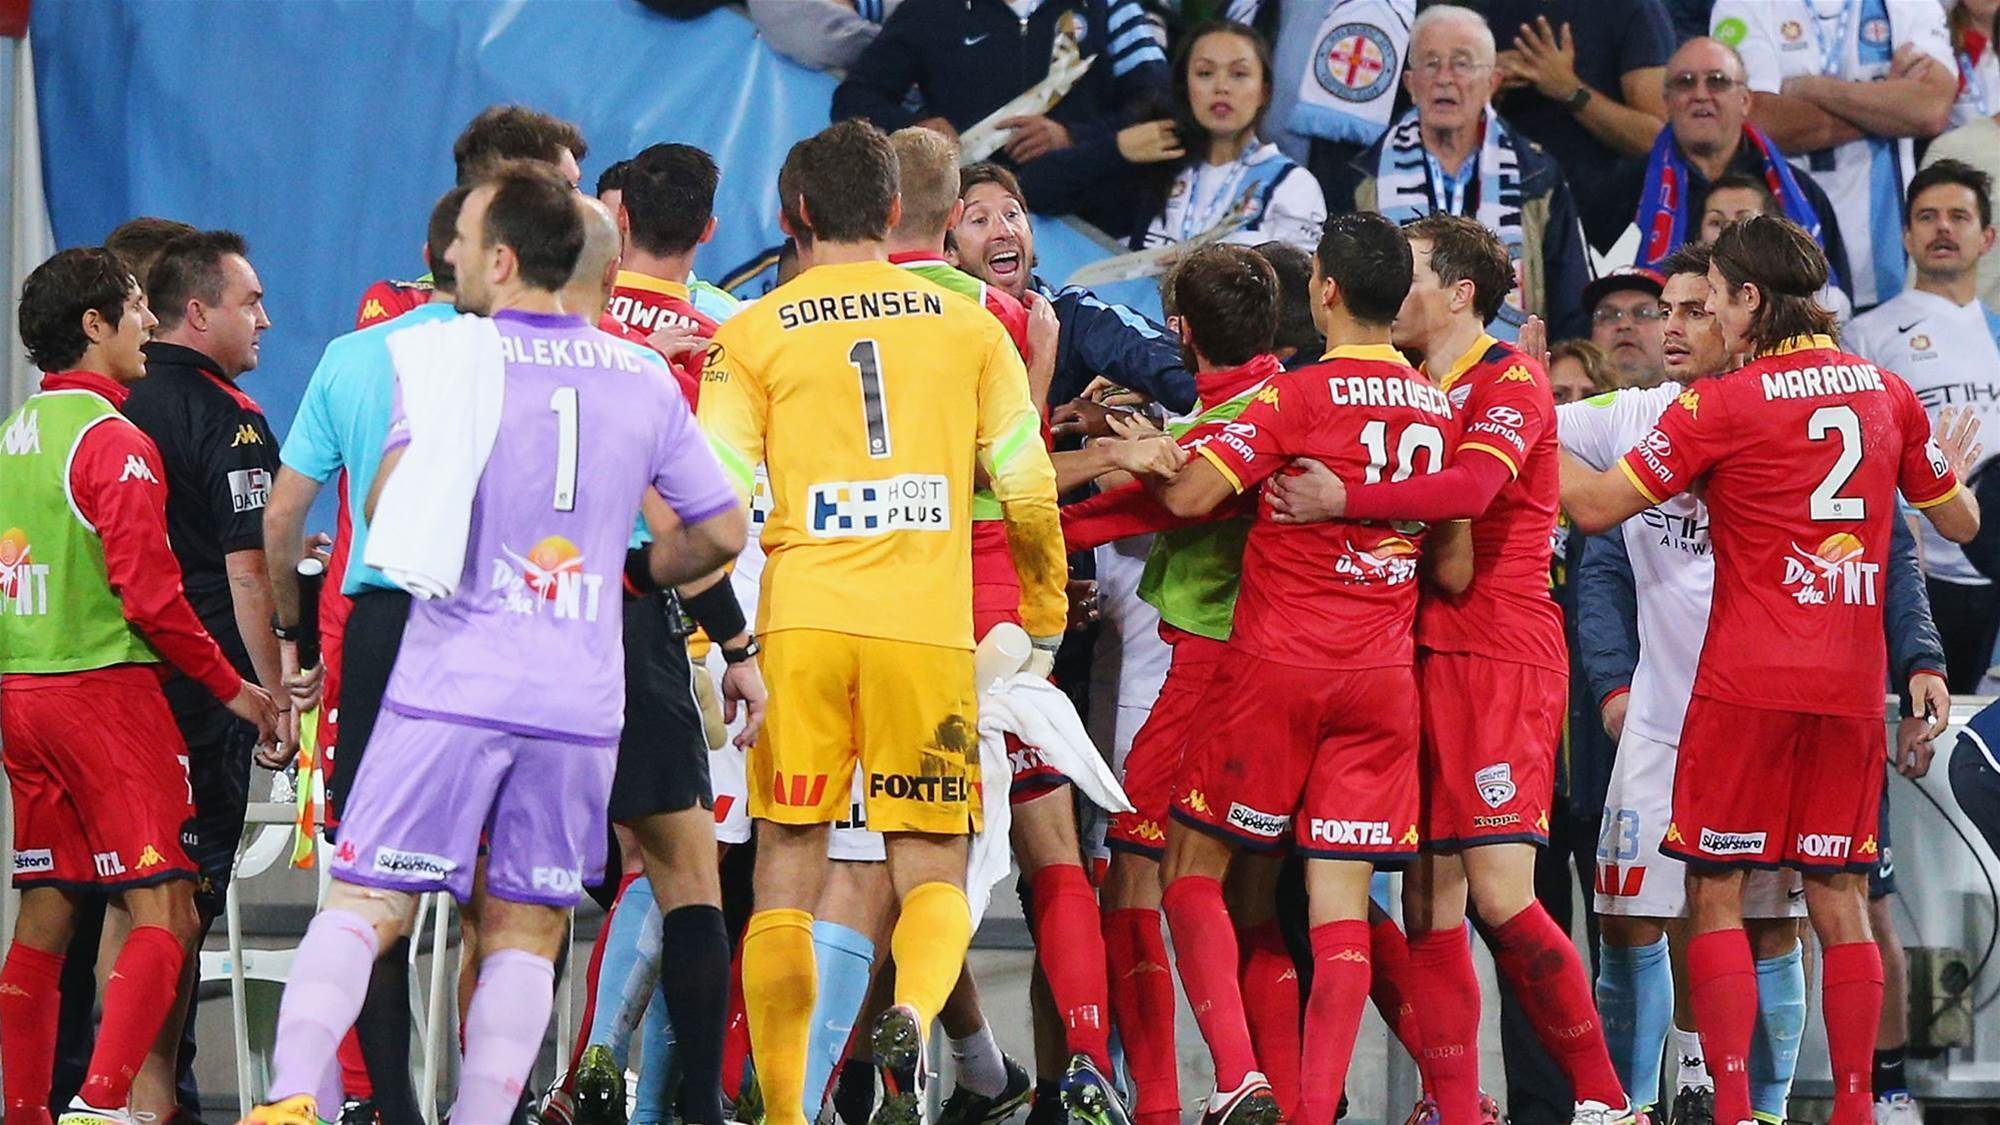 Adelaide V City: The new rivalry